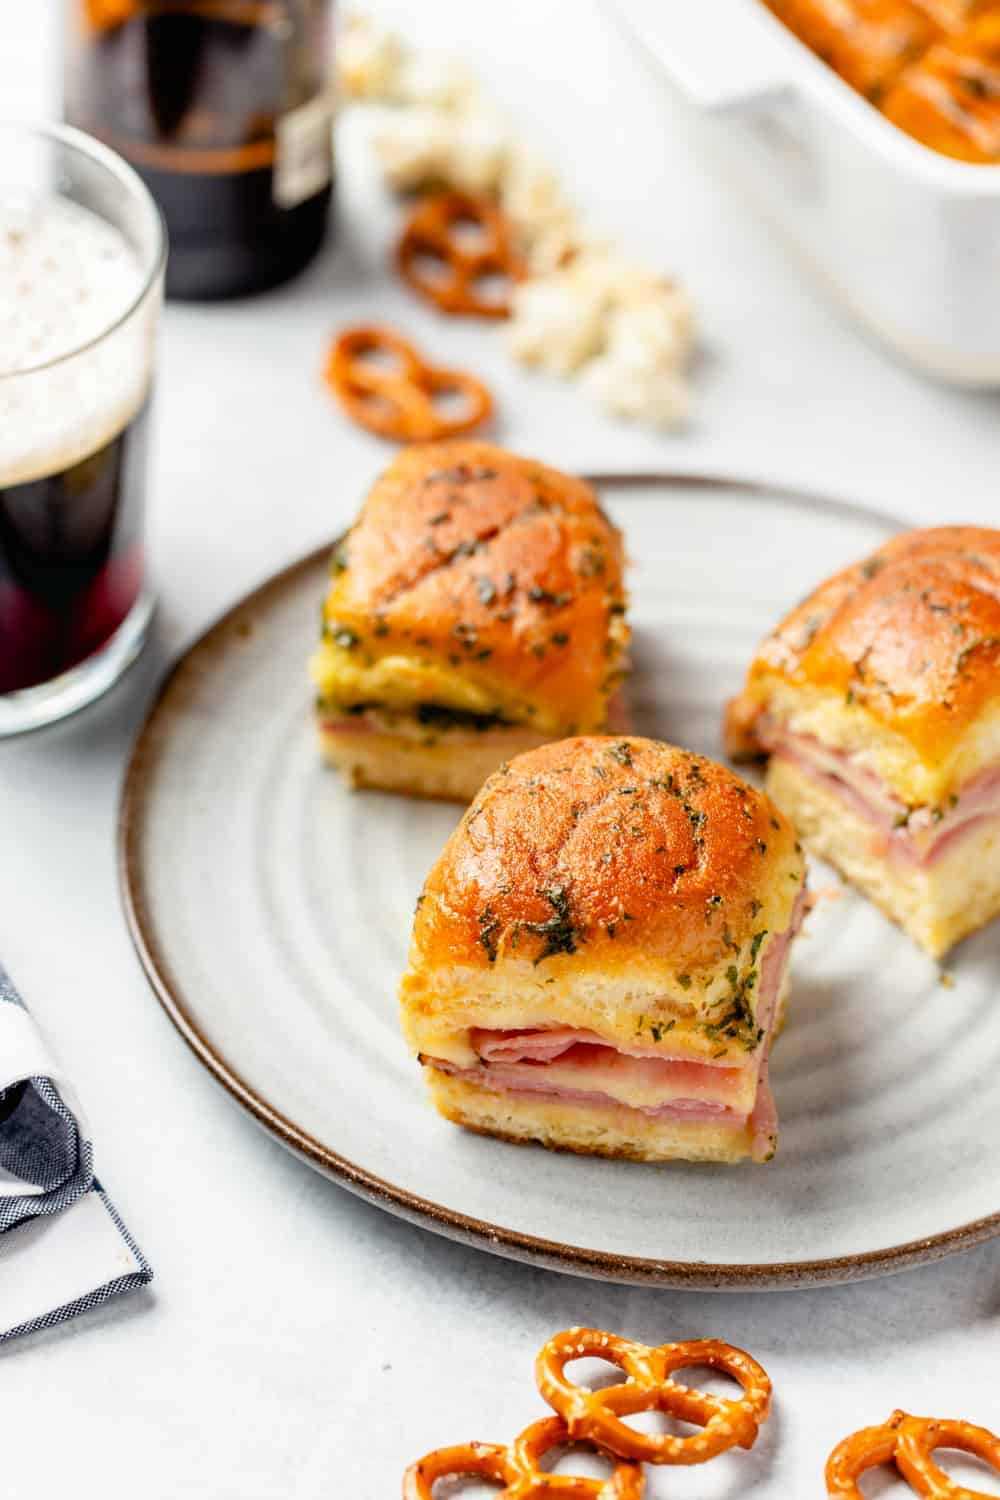 Plate of three ham and cheese sliders next to a glass of beer